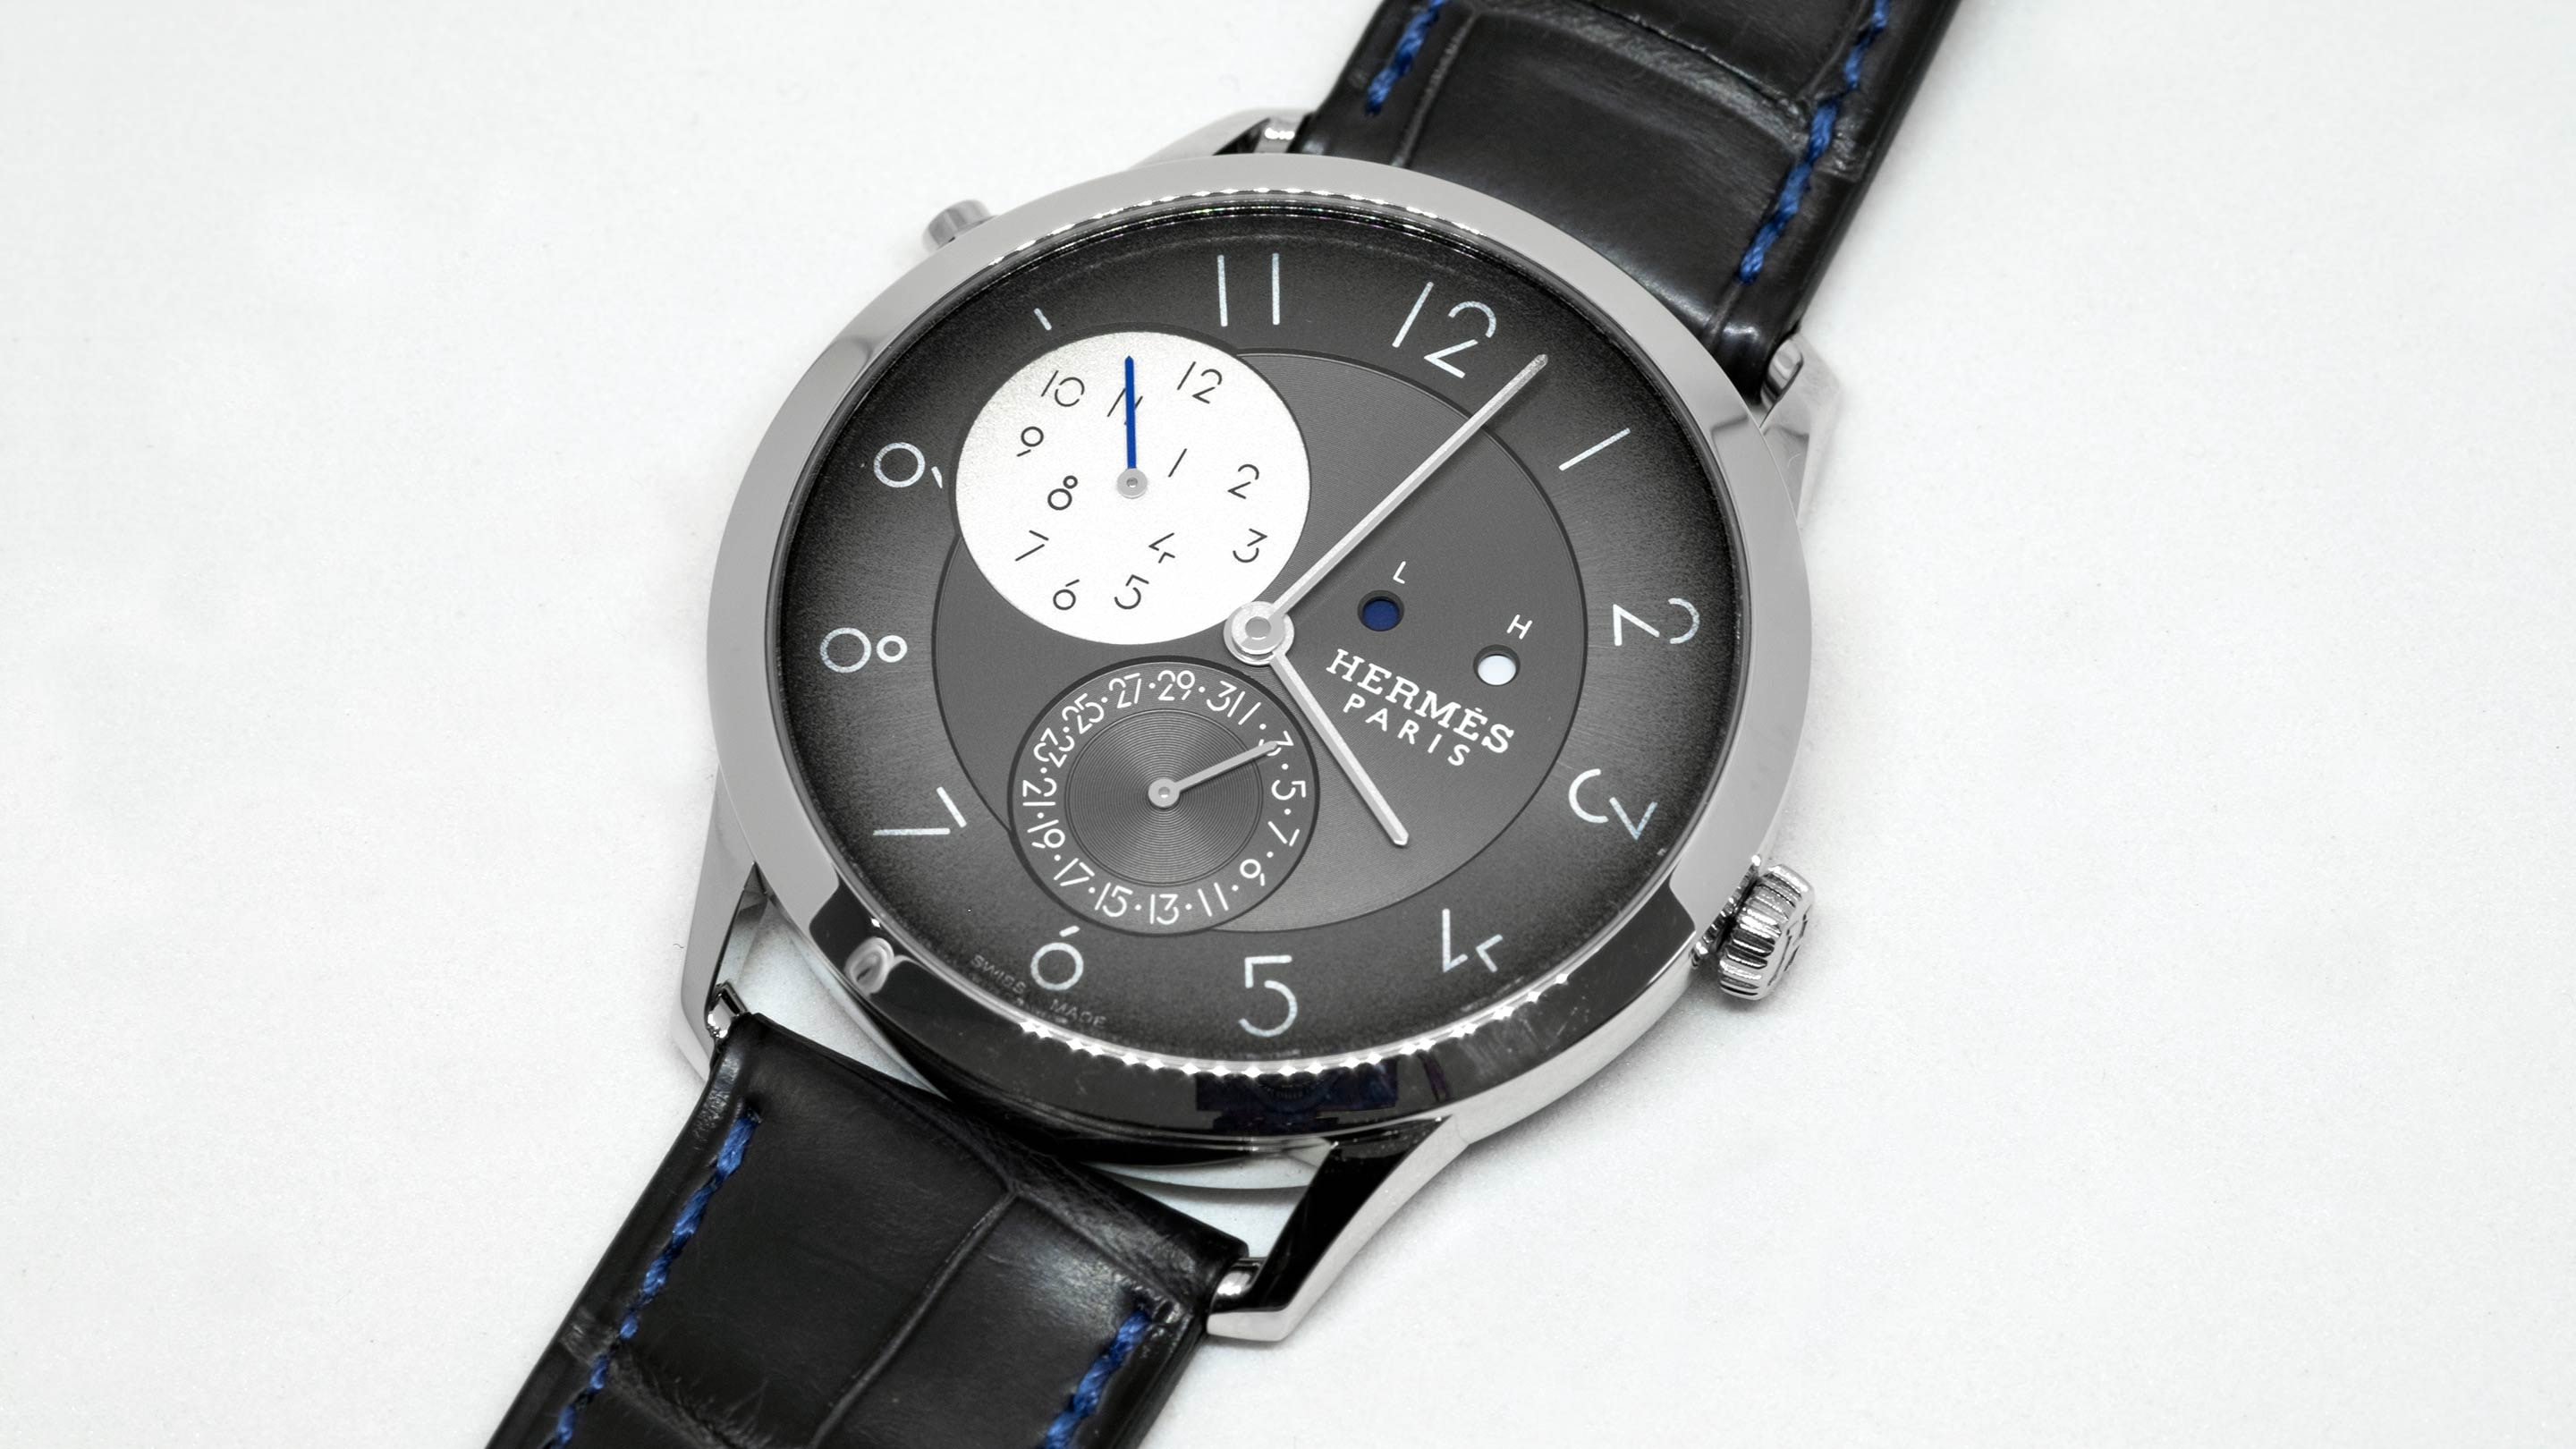 Introducing: The Hermès Slim d'Hermès GMT (Live Pics & Pricing)